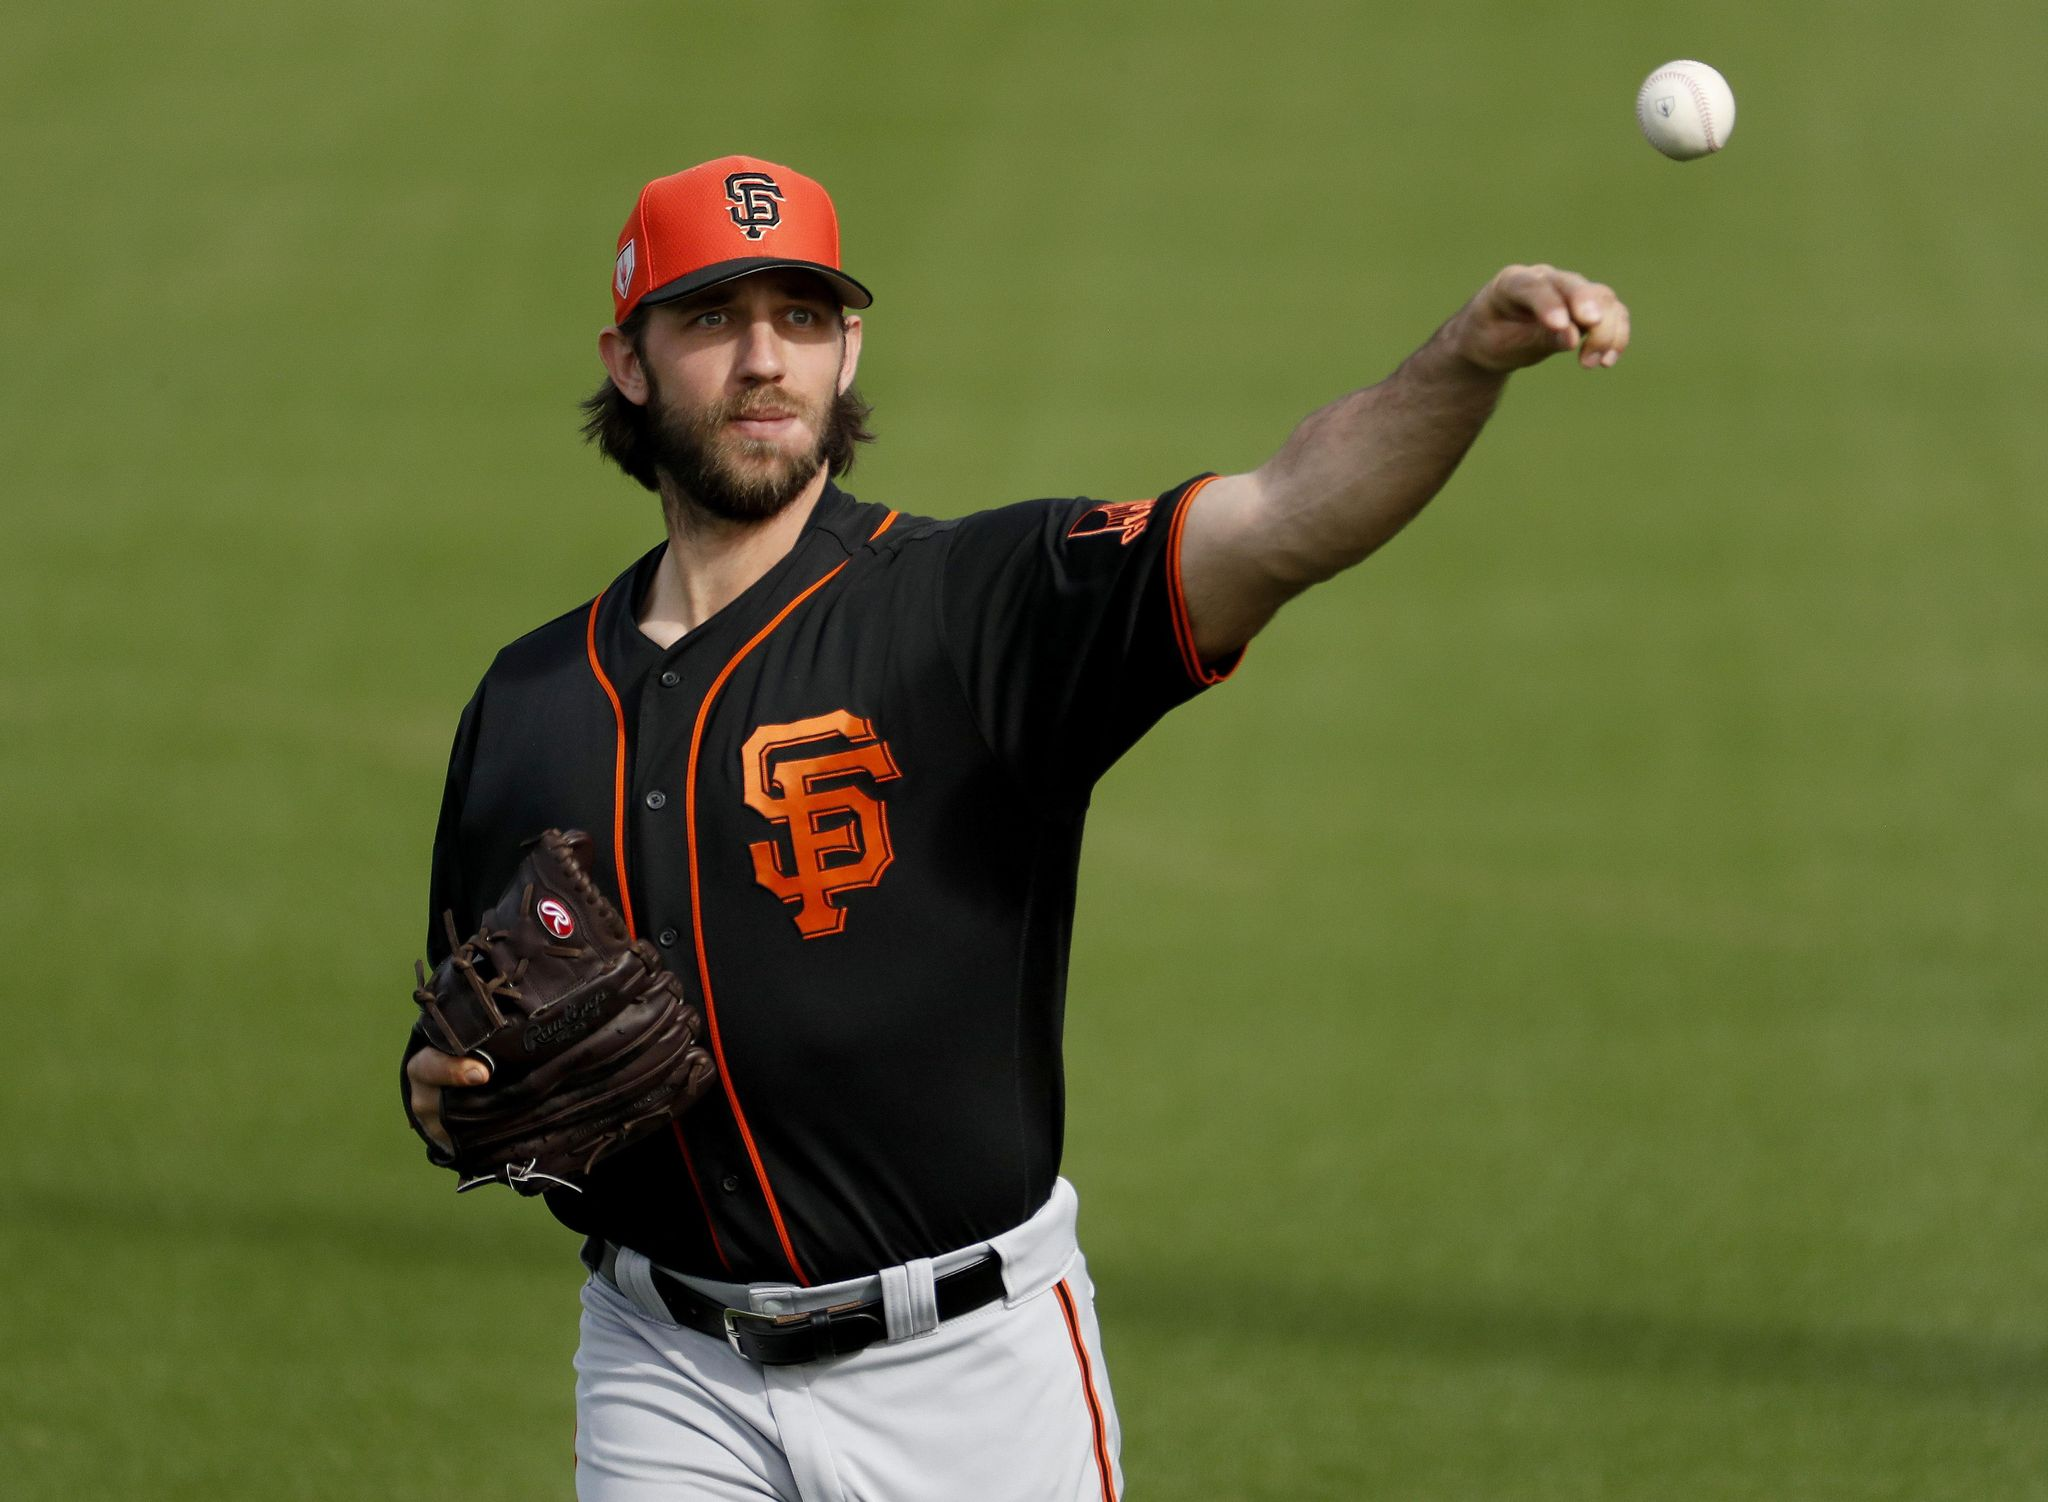 Giants_baseball_14350_s2048x1502